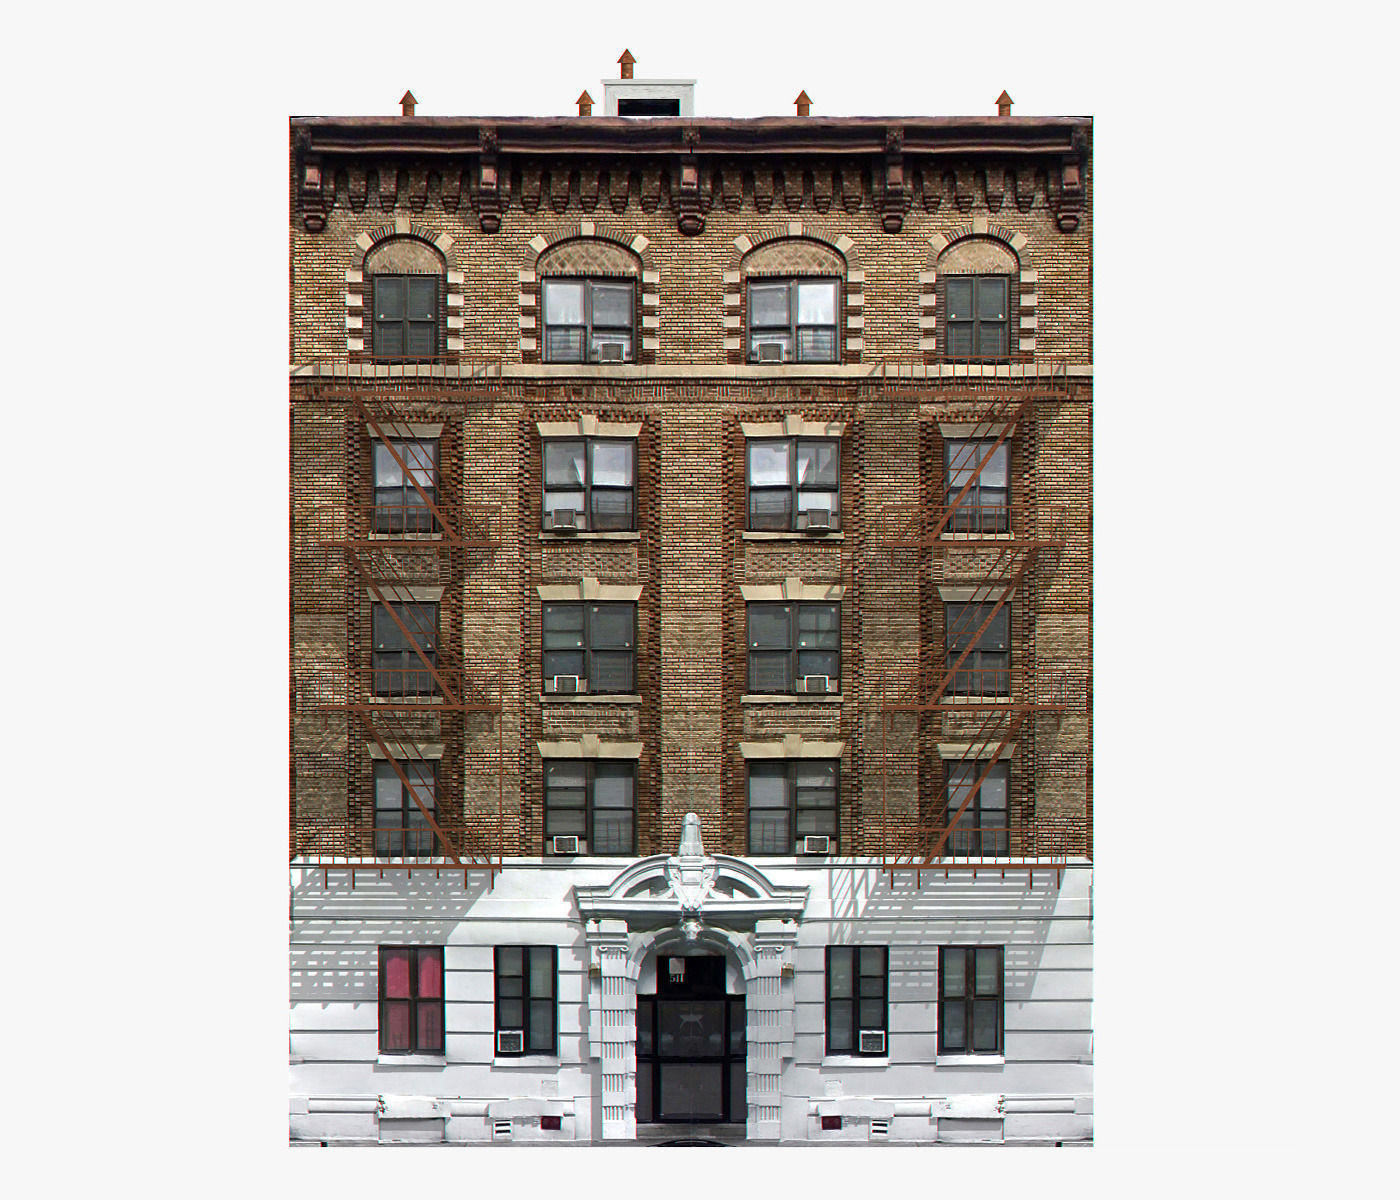 New York Brick Building 3d Model Game Ready Max Obj 3ds